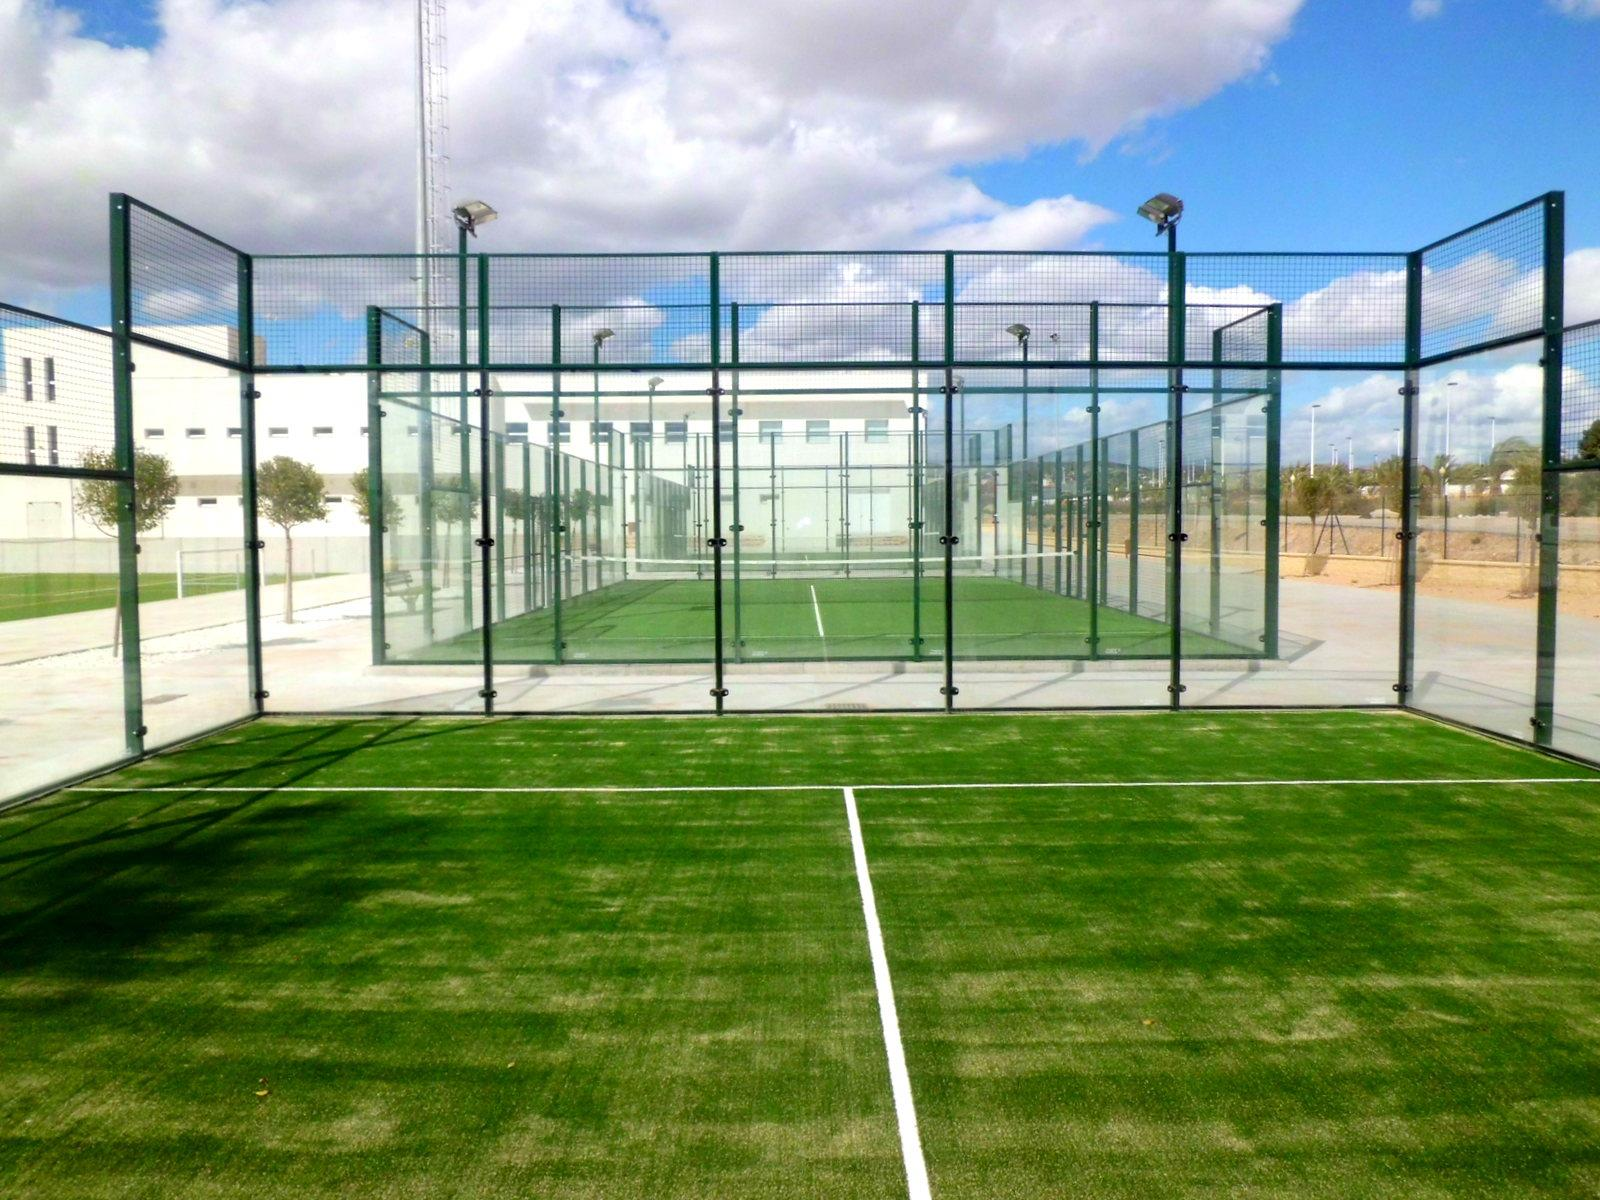 Pista de tenis Wallpaper